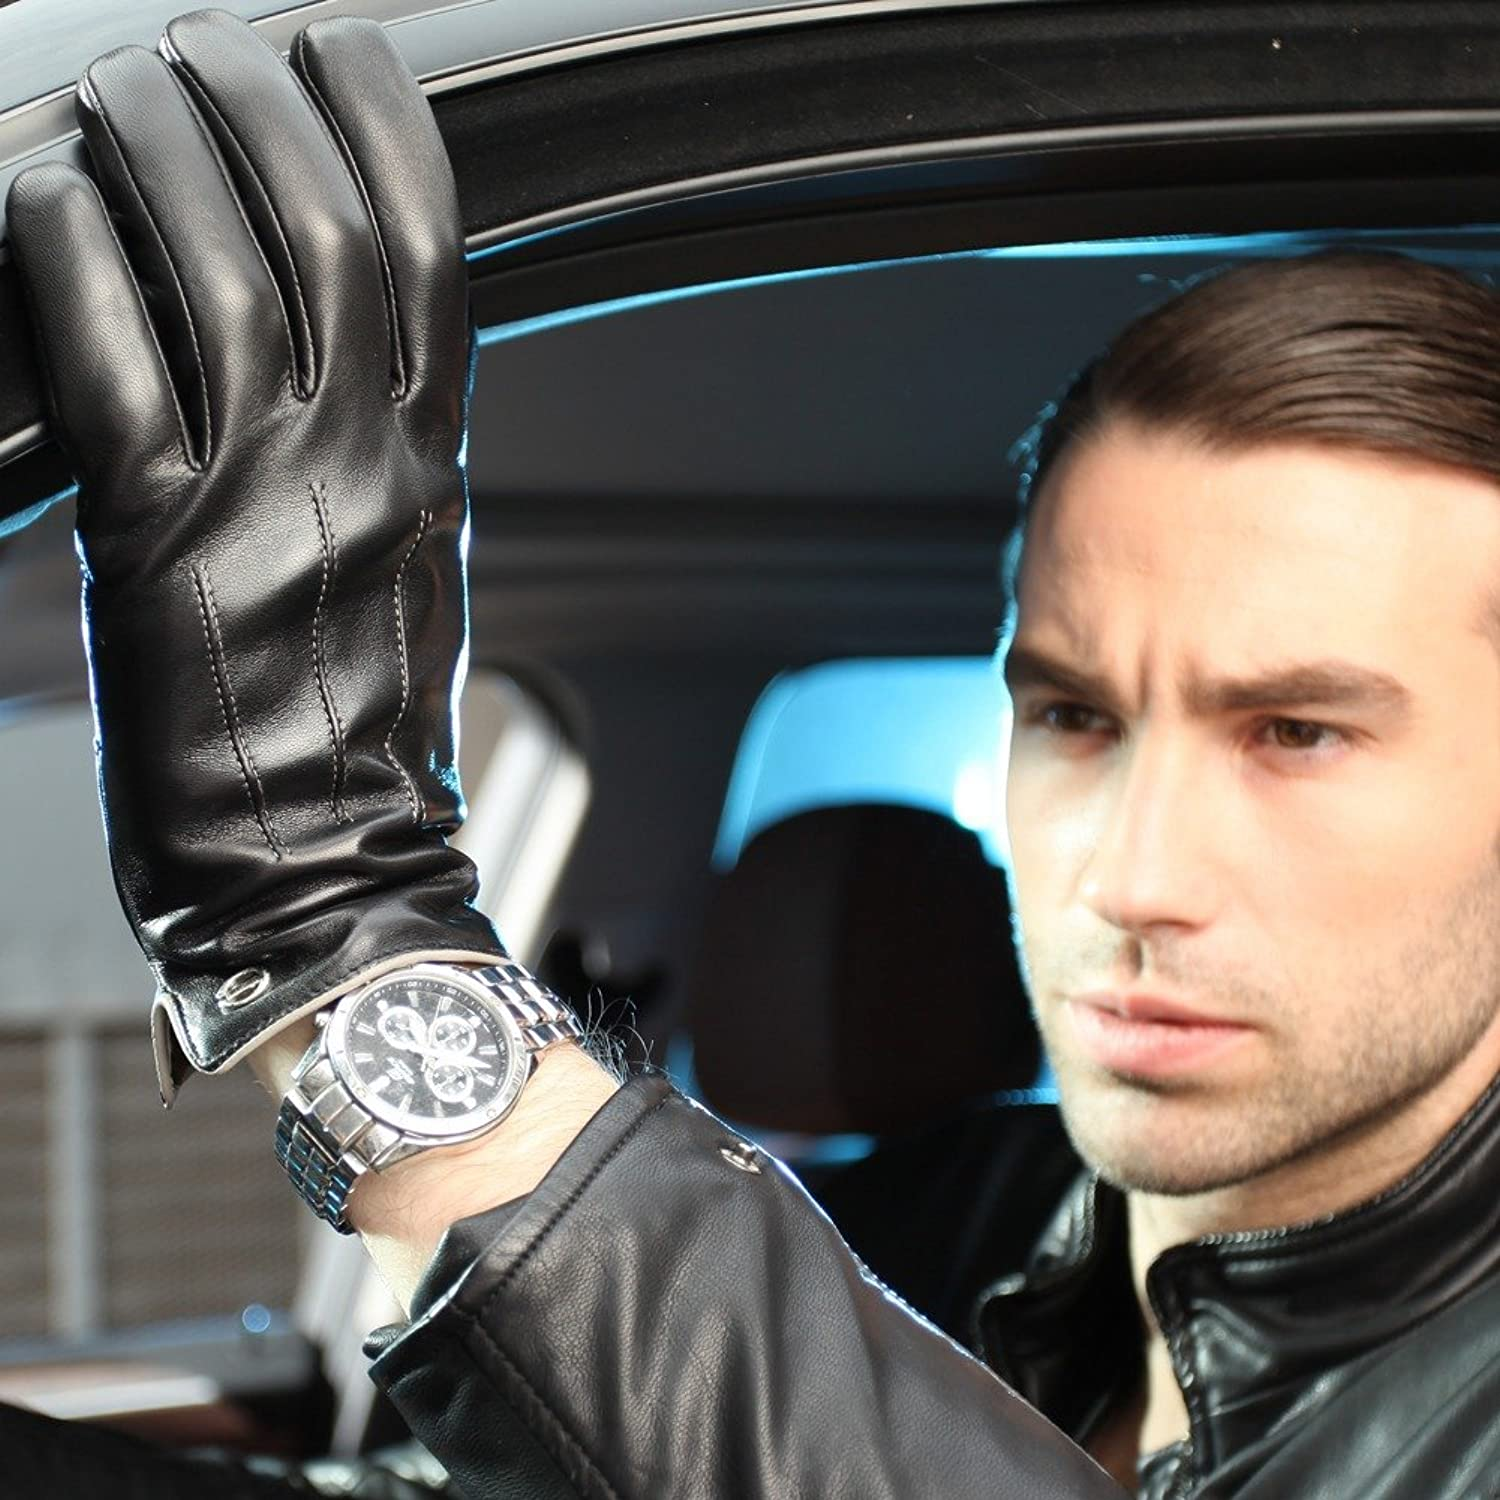 Mens leather gloves for iphone - Luxury Men S Touchscreen Texting Winter Italian Nappa Leather Dress Driving Gloves Cashmere Wool Fleece Lining 8 Us Standard Size Black Fleece